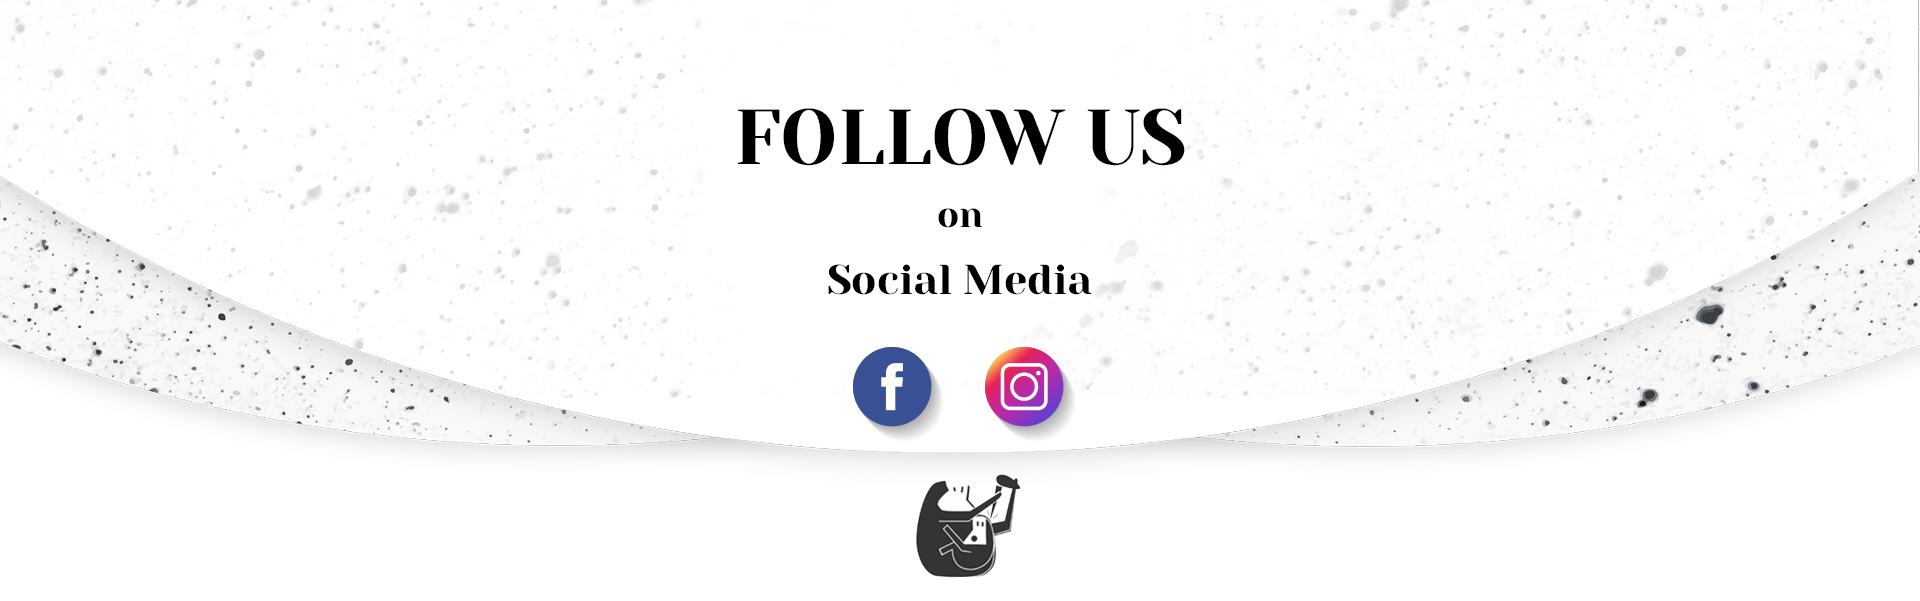 Stay Connected With Us On Social Media!